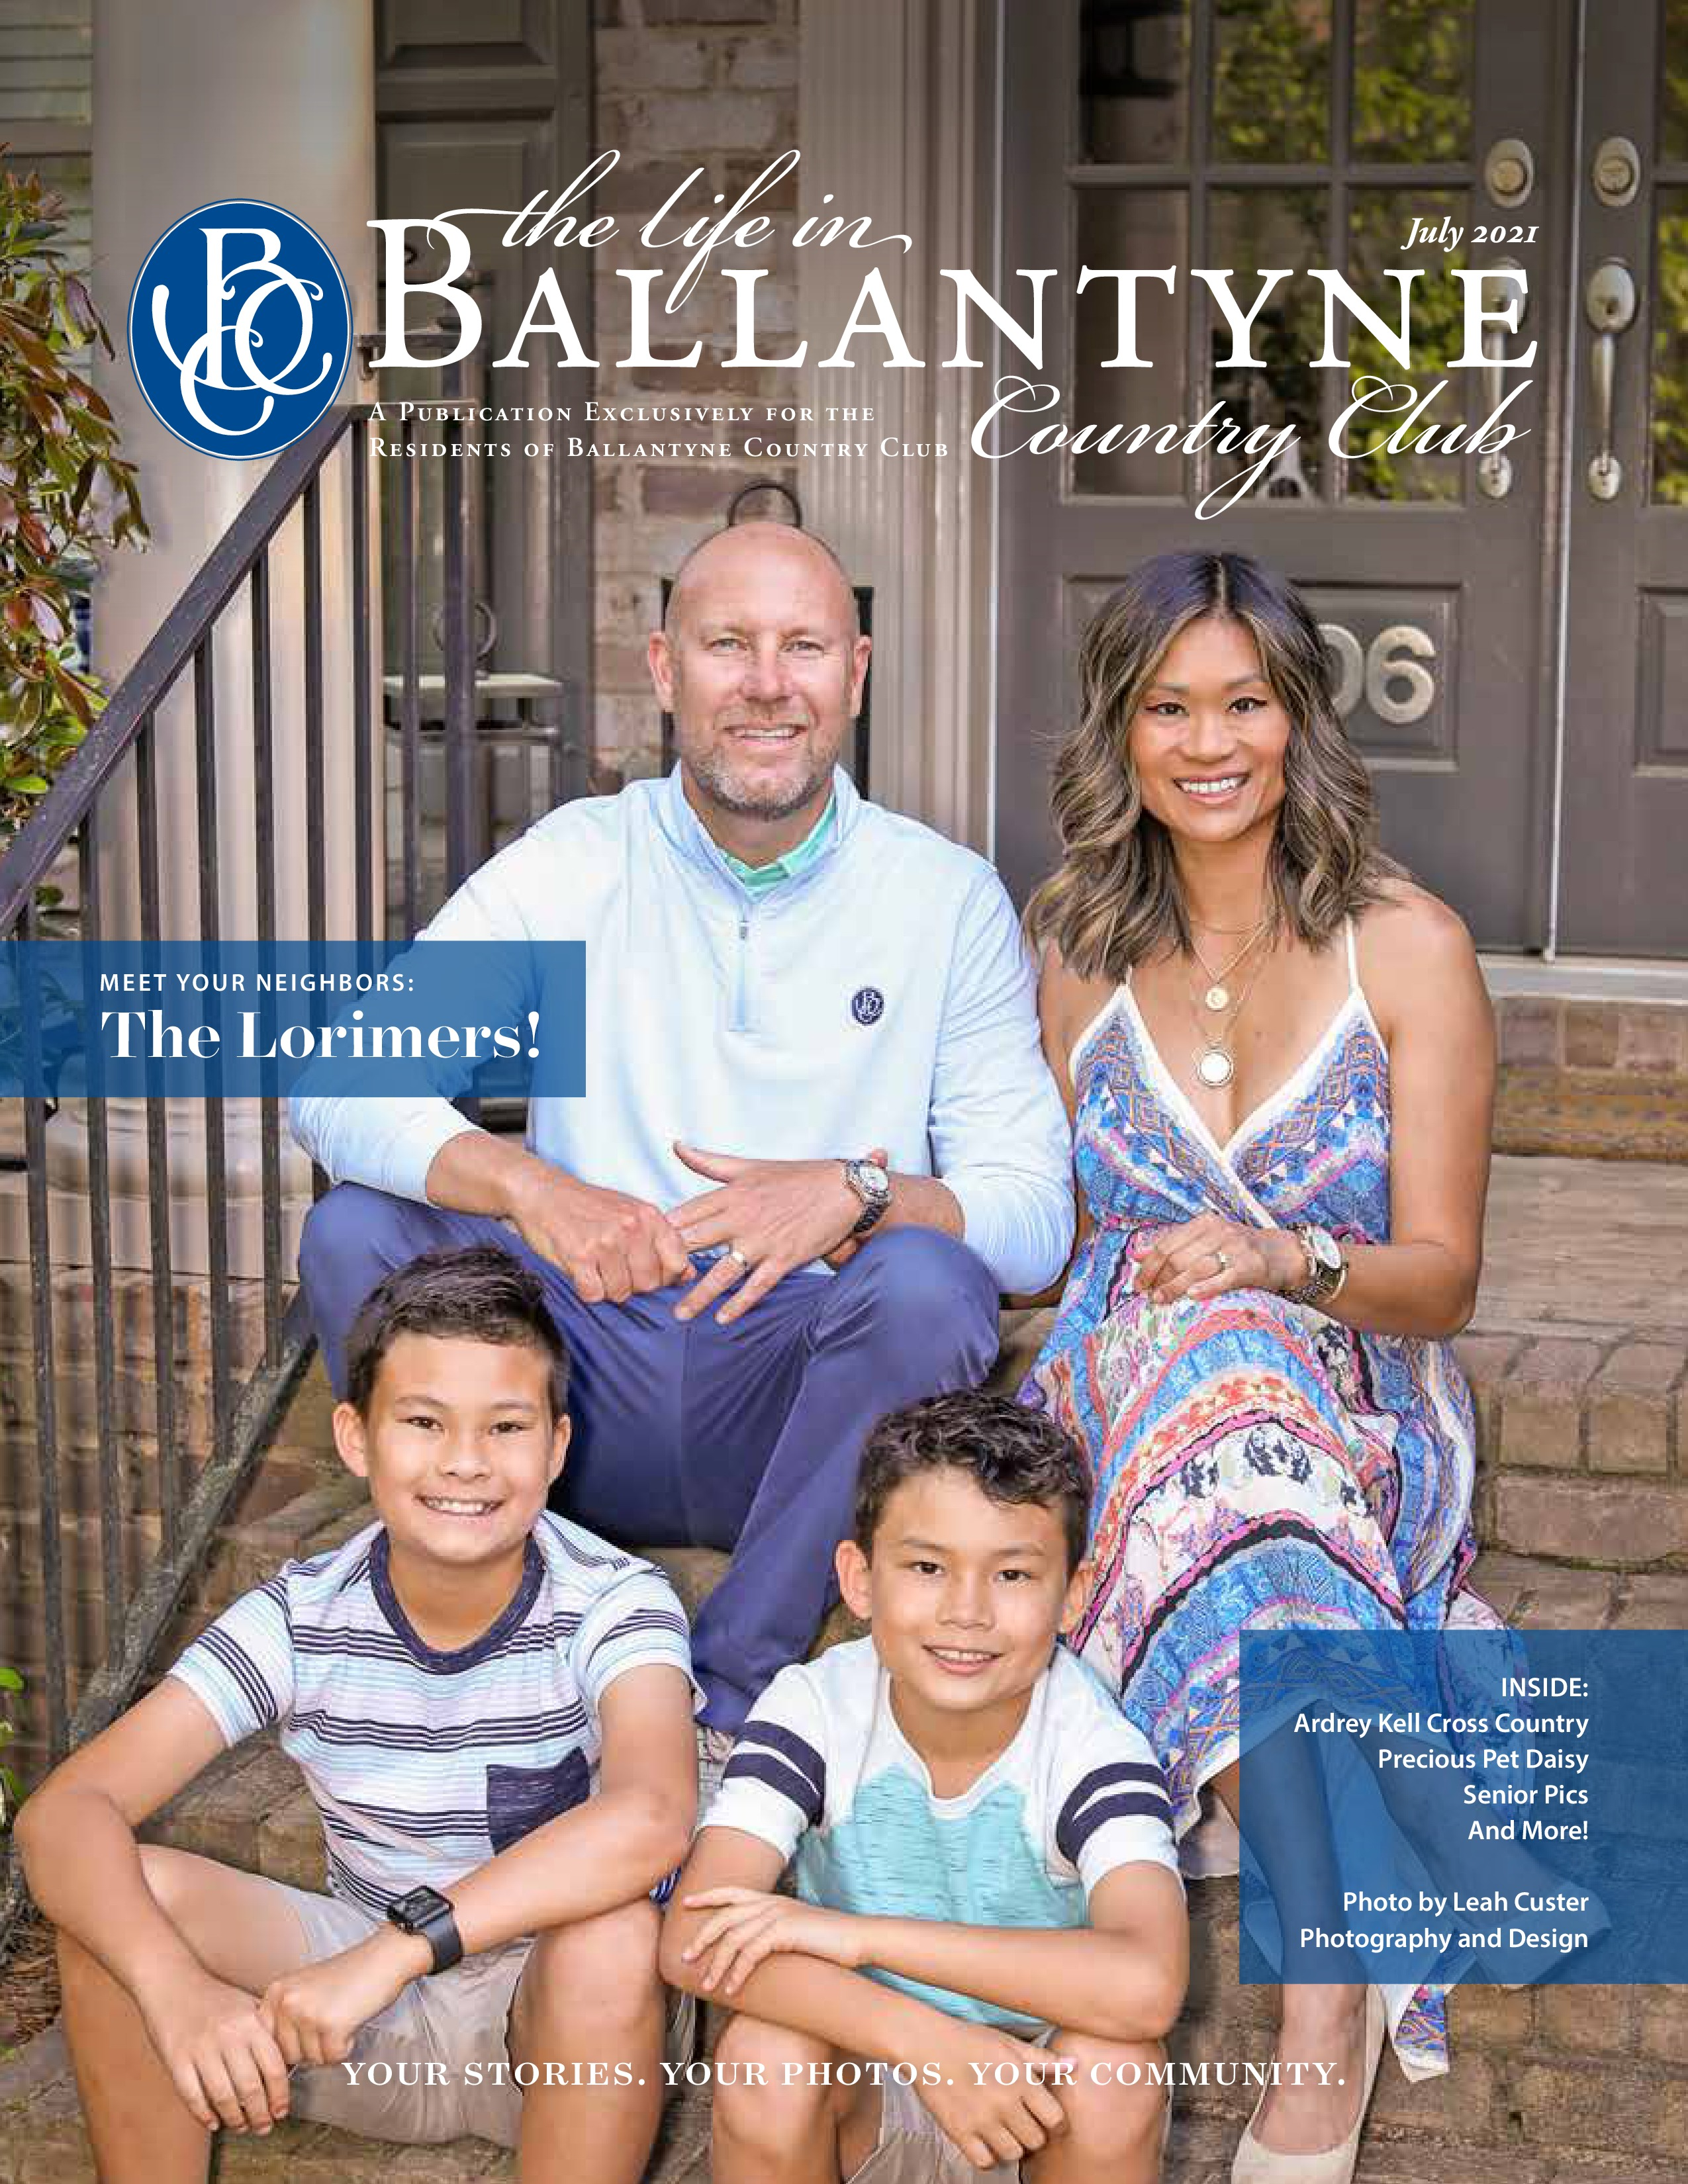 The Life in Ballantyne Country Club 2021-07-01